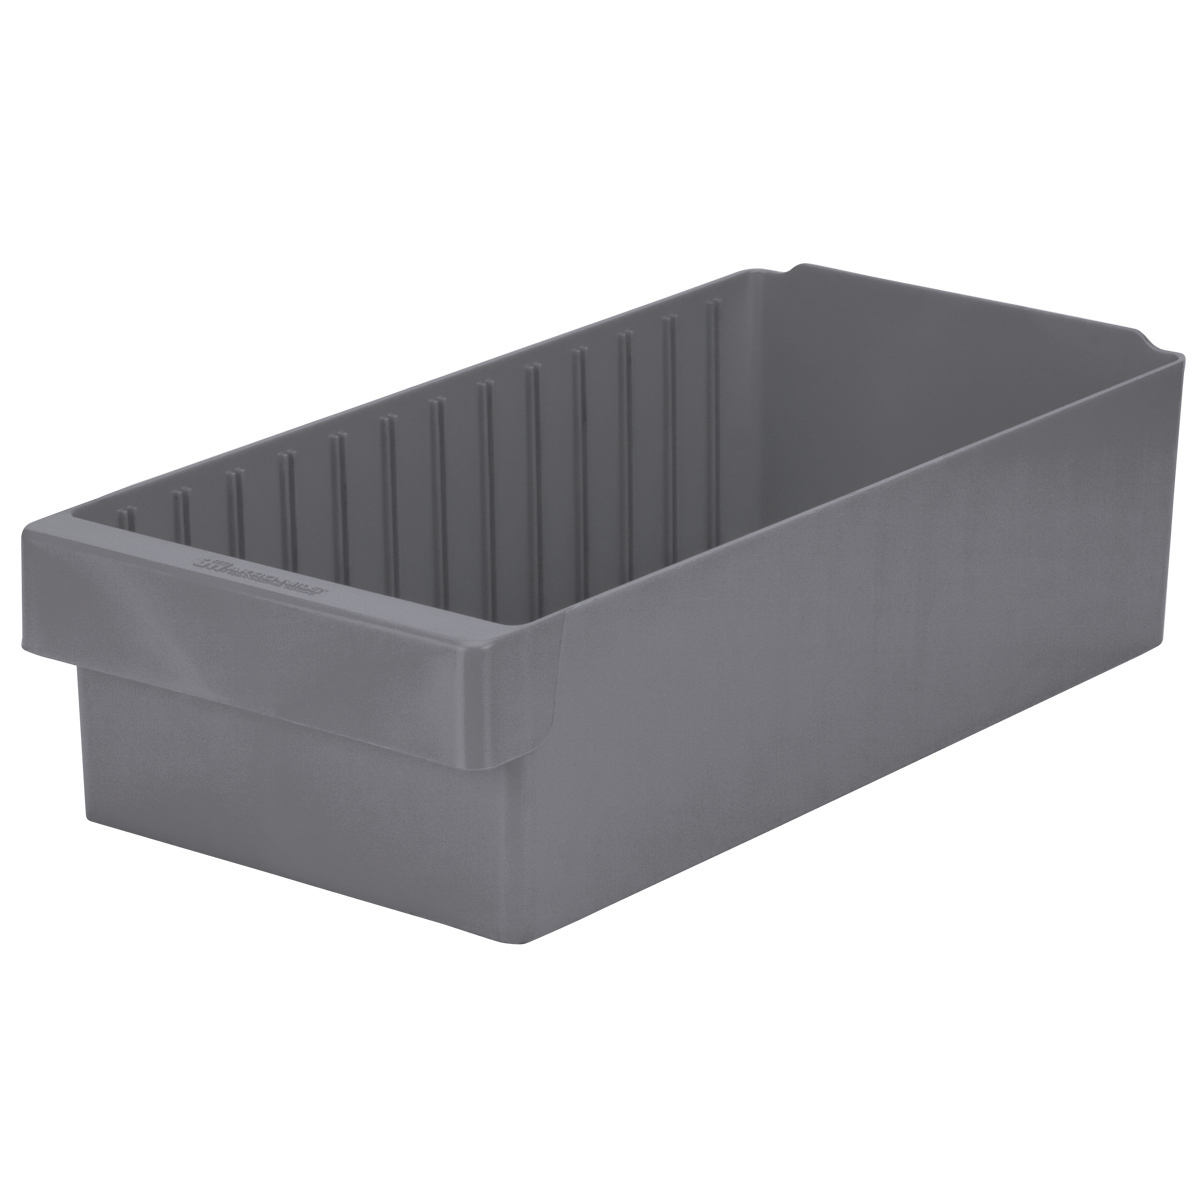 AkroDrawer 17-5/8 x 8-3/8 x 4-5/8, Gray (31188GRY).  This item sold in carton quantities of 4.